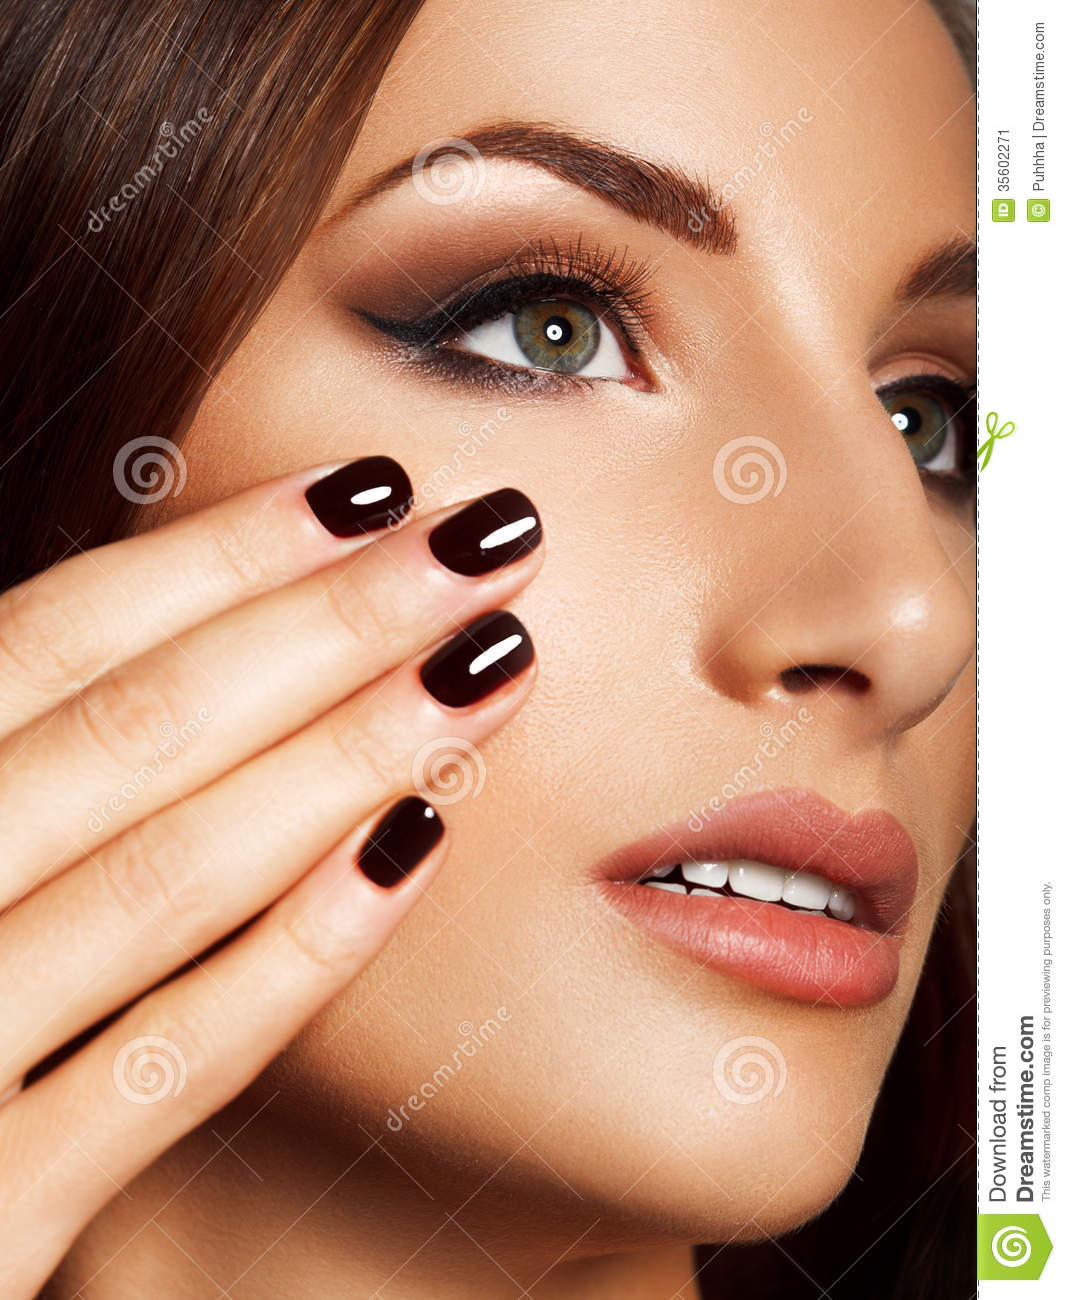 beautiful woman with black nails makeup and manicure